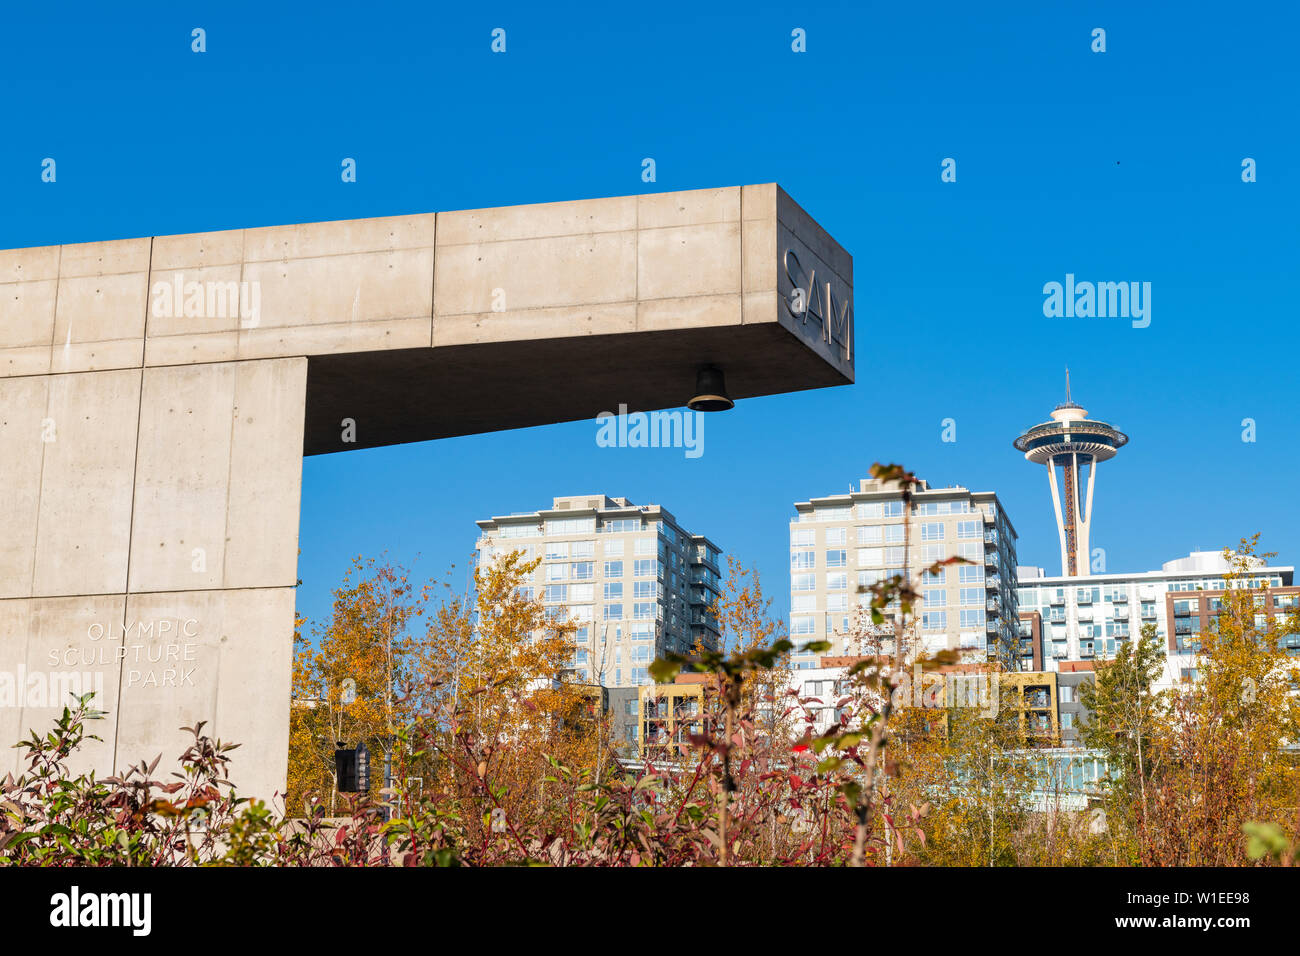 Space Needle from Olympic Sculpture Park, Seattle, Washington State, United States of America, North America - Stock Image